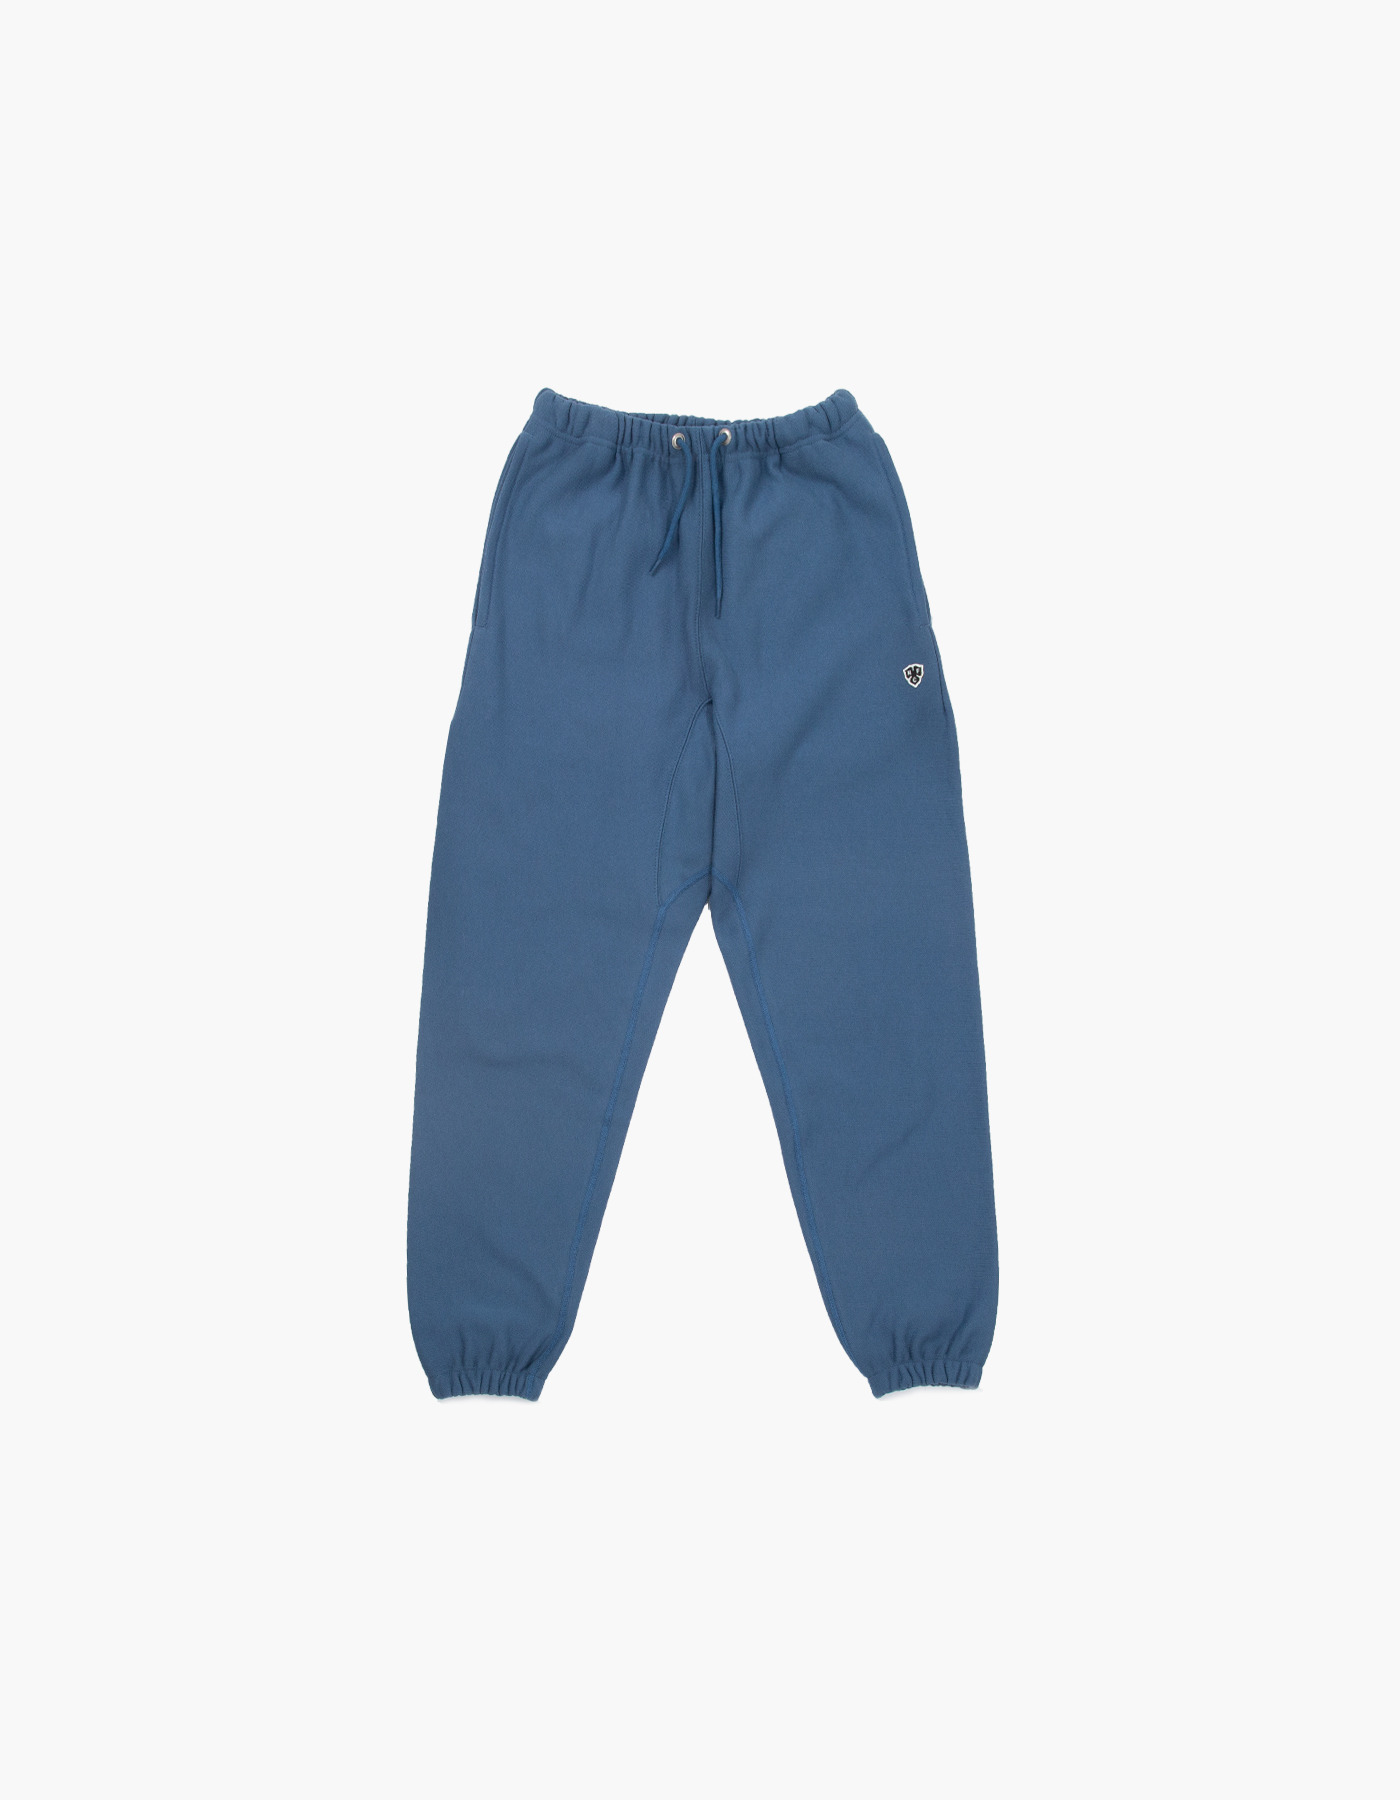 231 HFC SWEATPANTS / NAVY